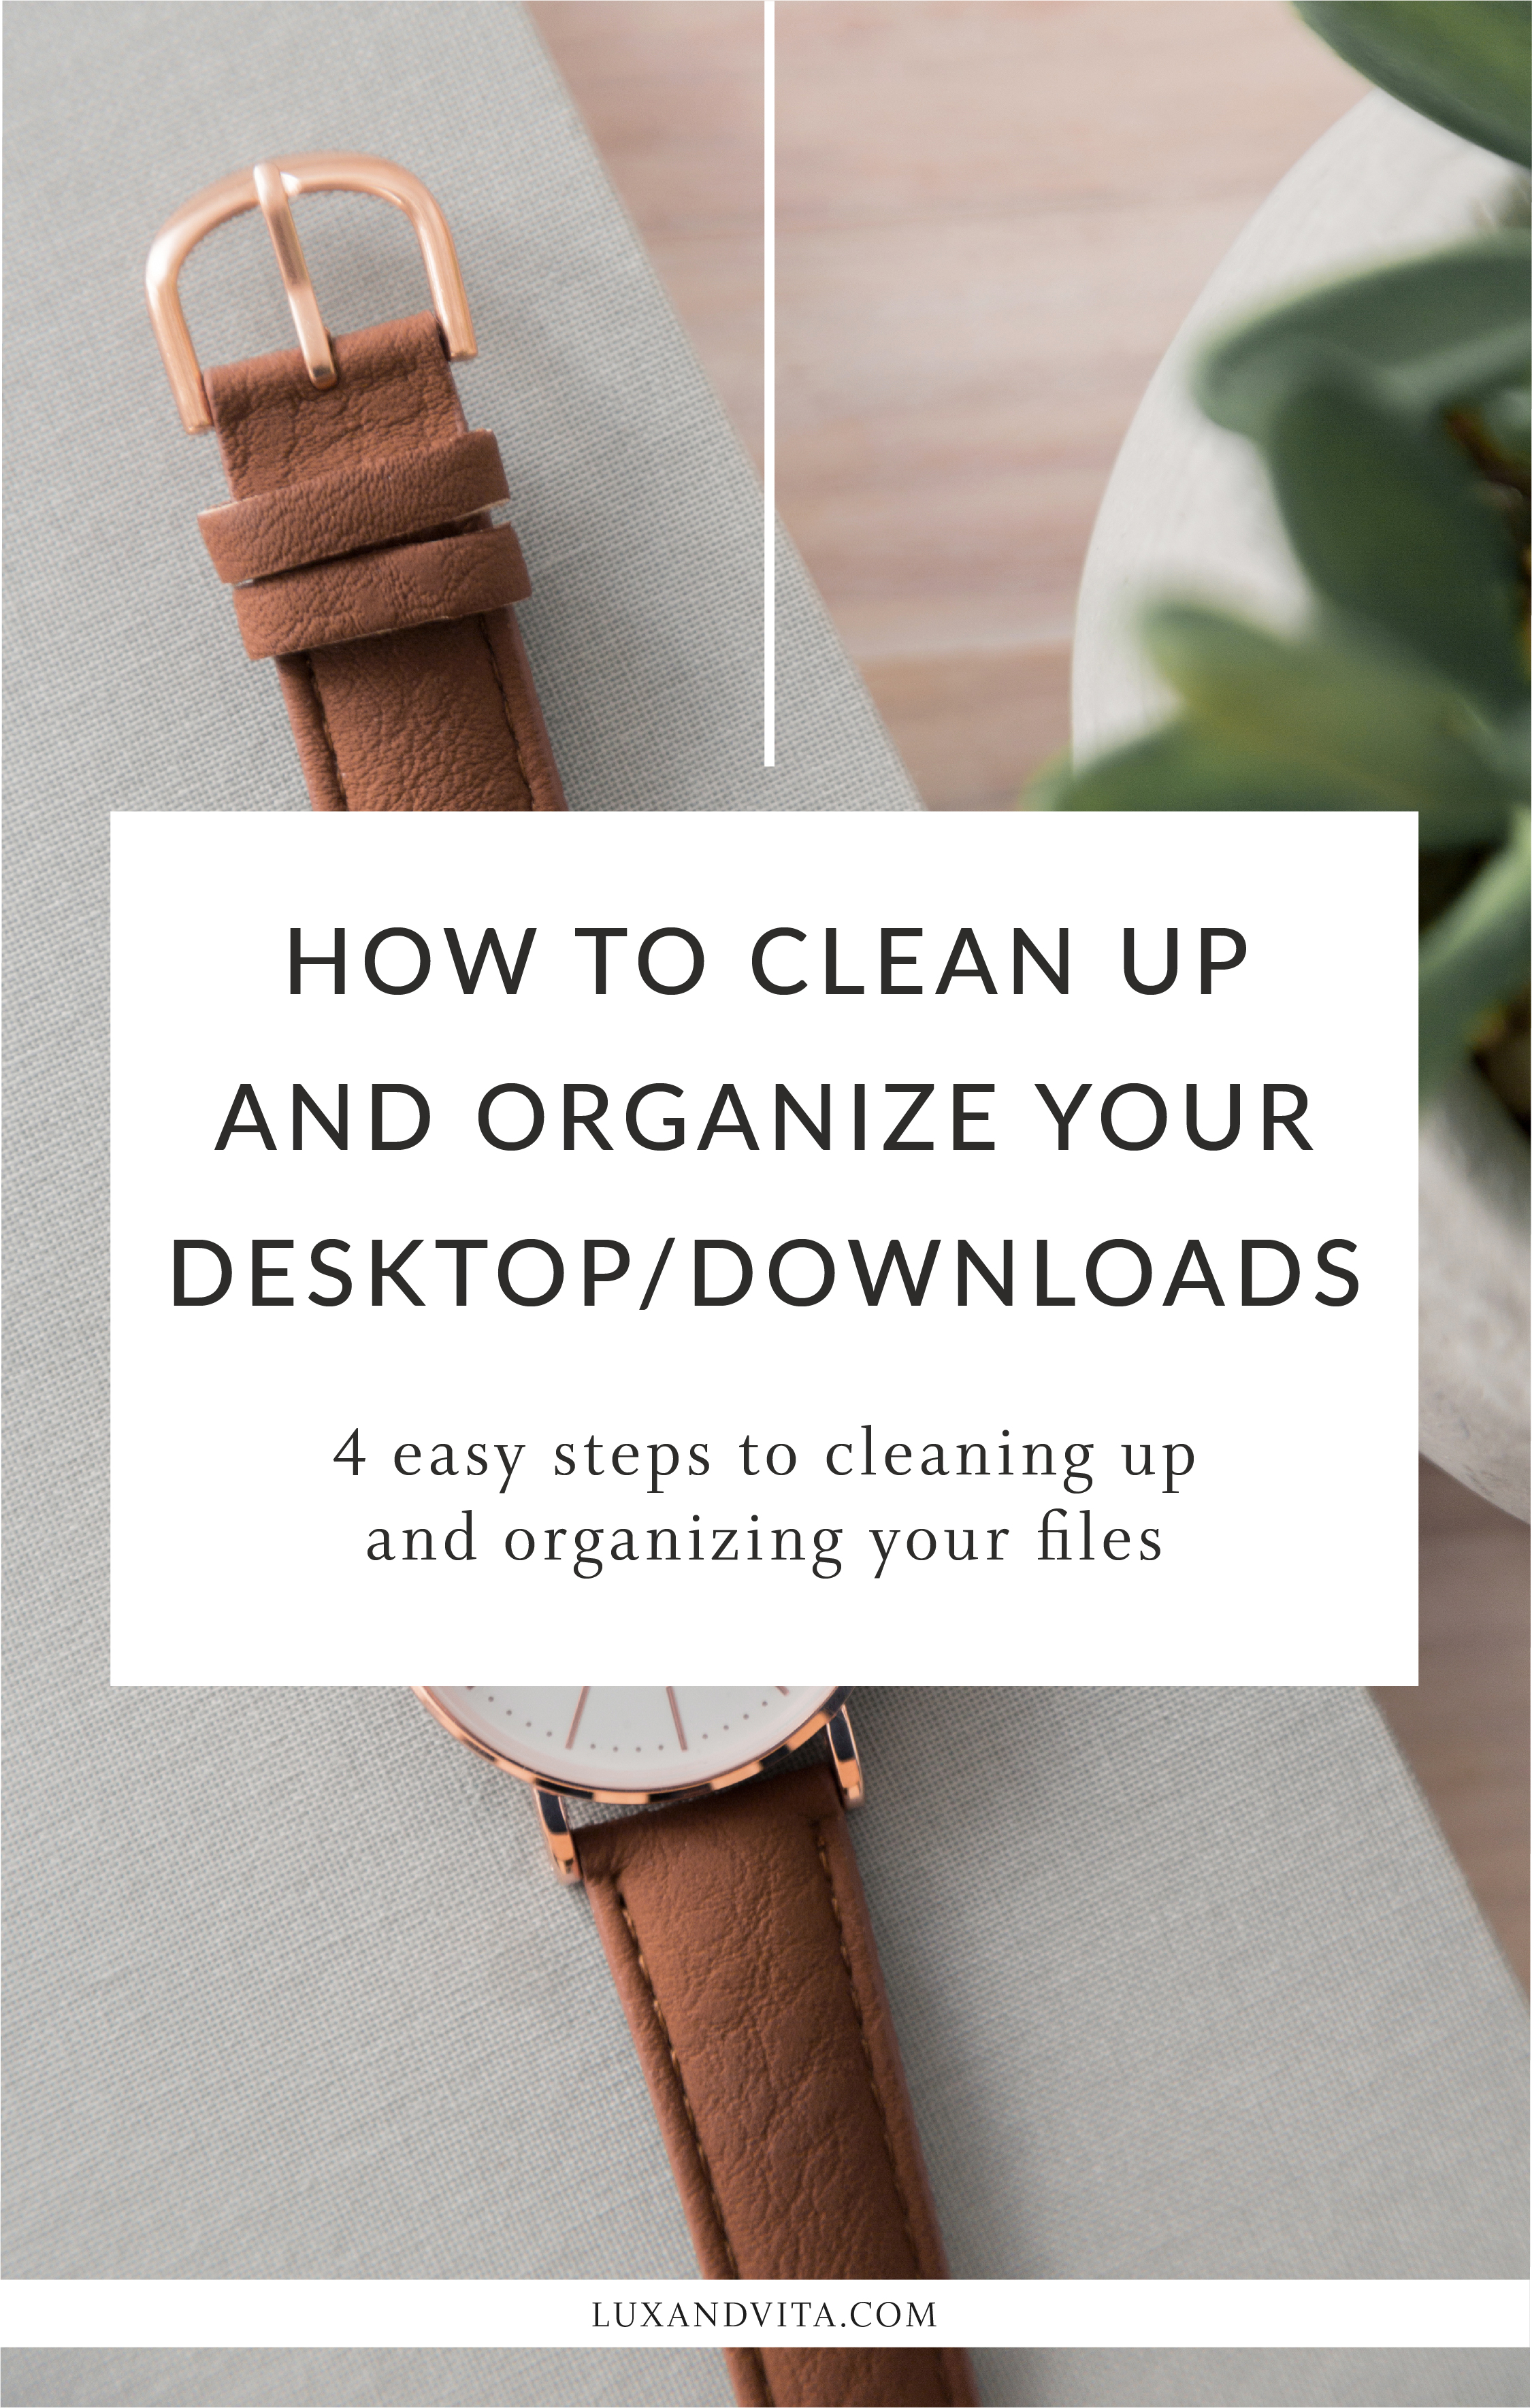 How to clean up and organize your desktop or downloads folder in 4 steps | Virtual Assistant, Project Manager, Organization Tips by Lux + Vita